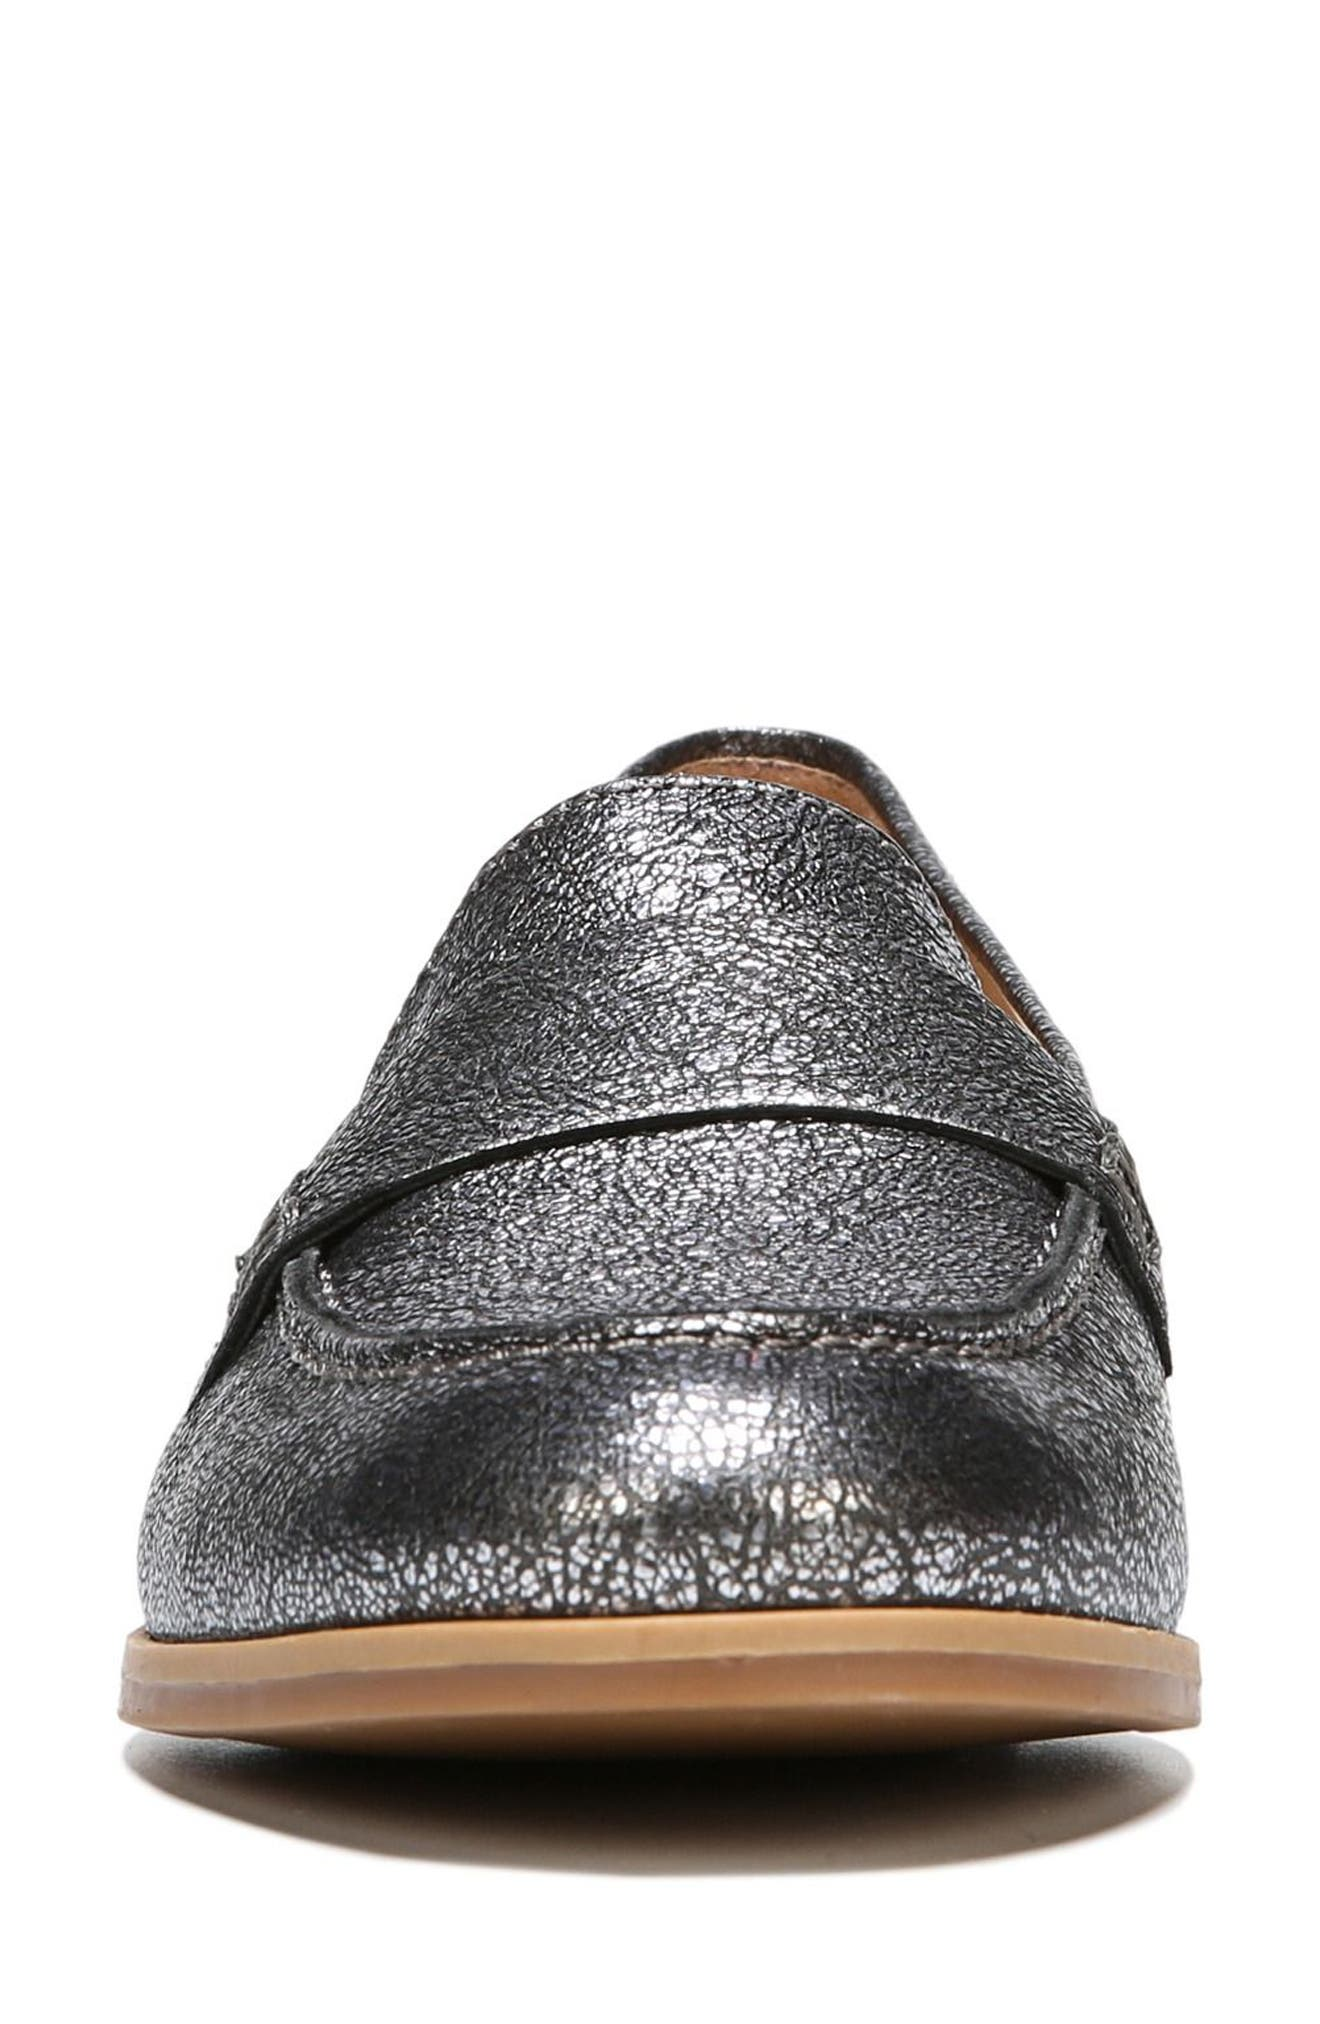 Veronica Loafer,                             Alternate thumbnail 4, color,                             Silver Leather